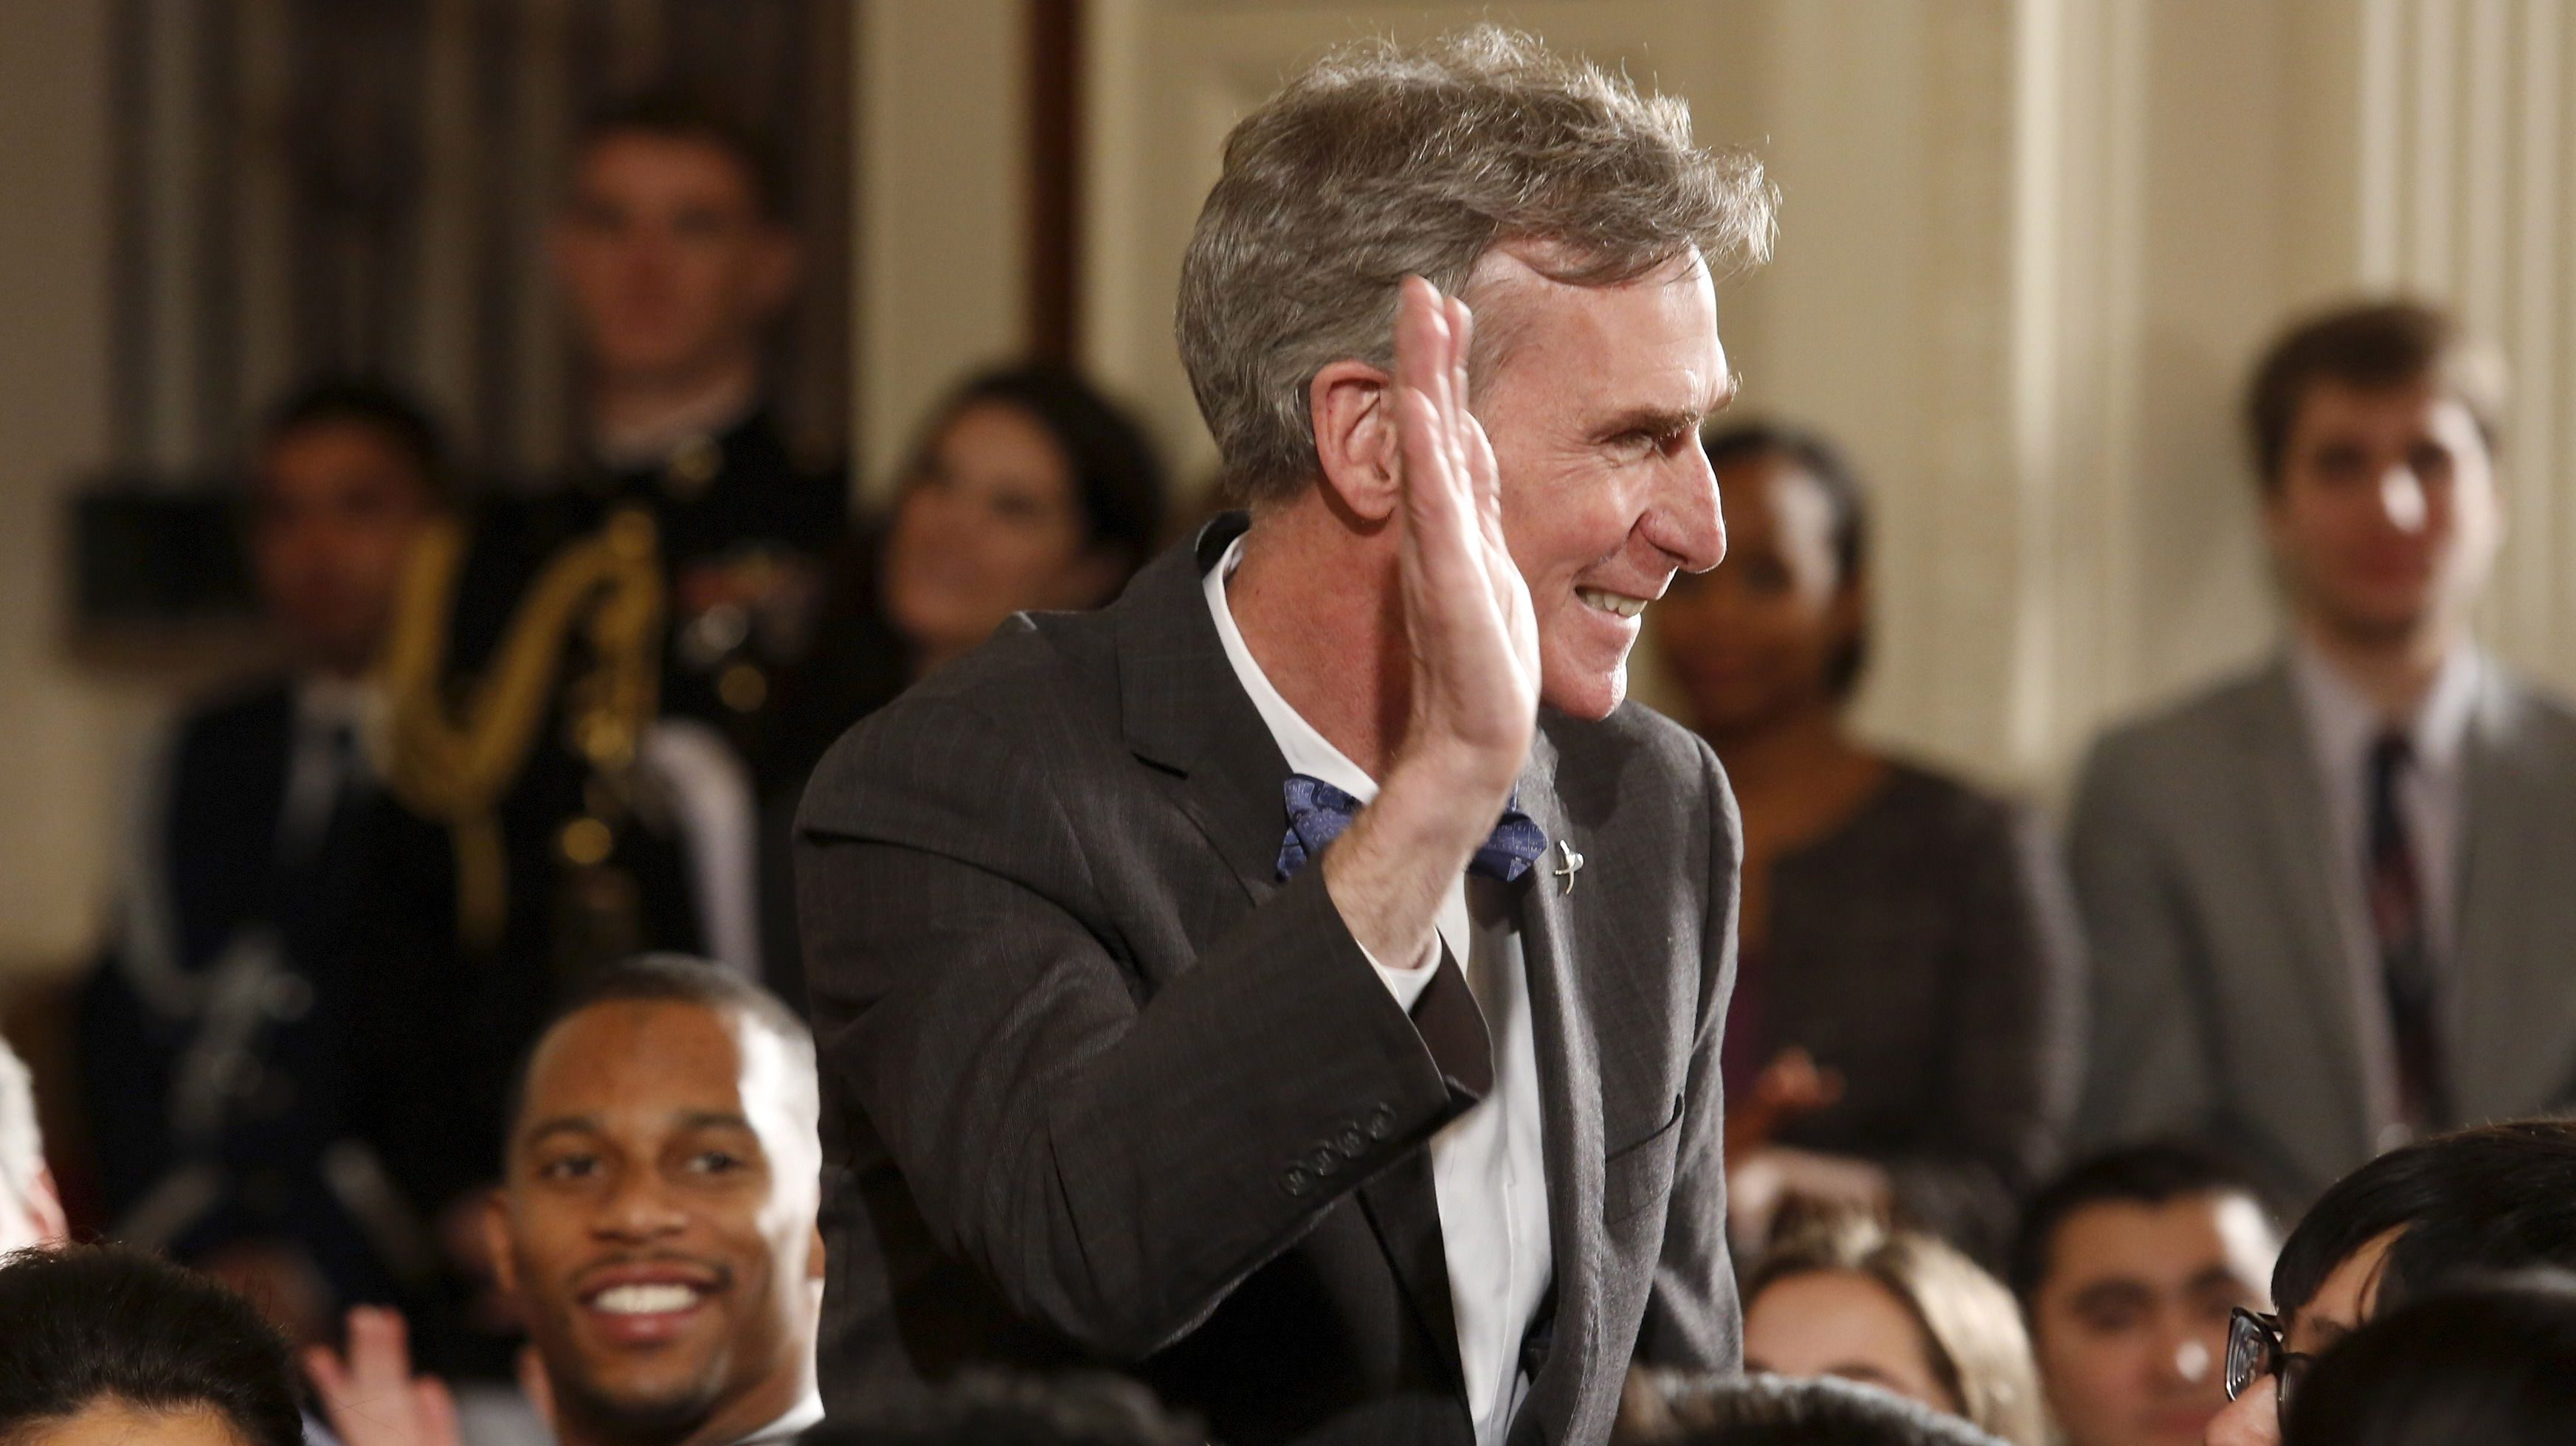 Bill Nye 'The Science Guy' acknowledges applause as U.S. President Barack Obama mentions him in his remarks at the 2015 White House Science Fair at the White House in Washington, March 23 2015.  REUTERS/Jonathan Ernst - GF10000035937